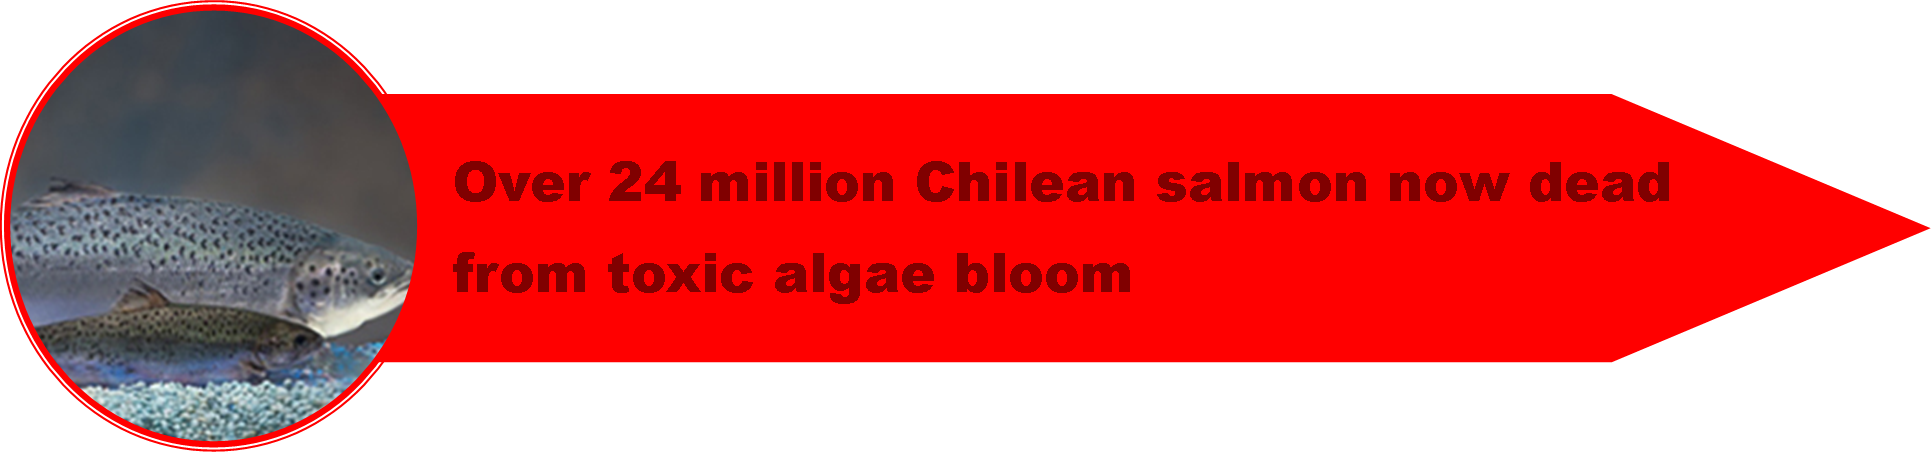 1_Chile_Crisis.png